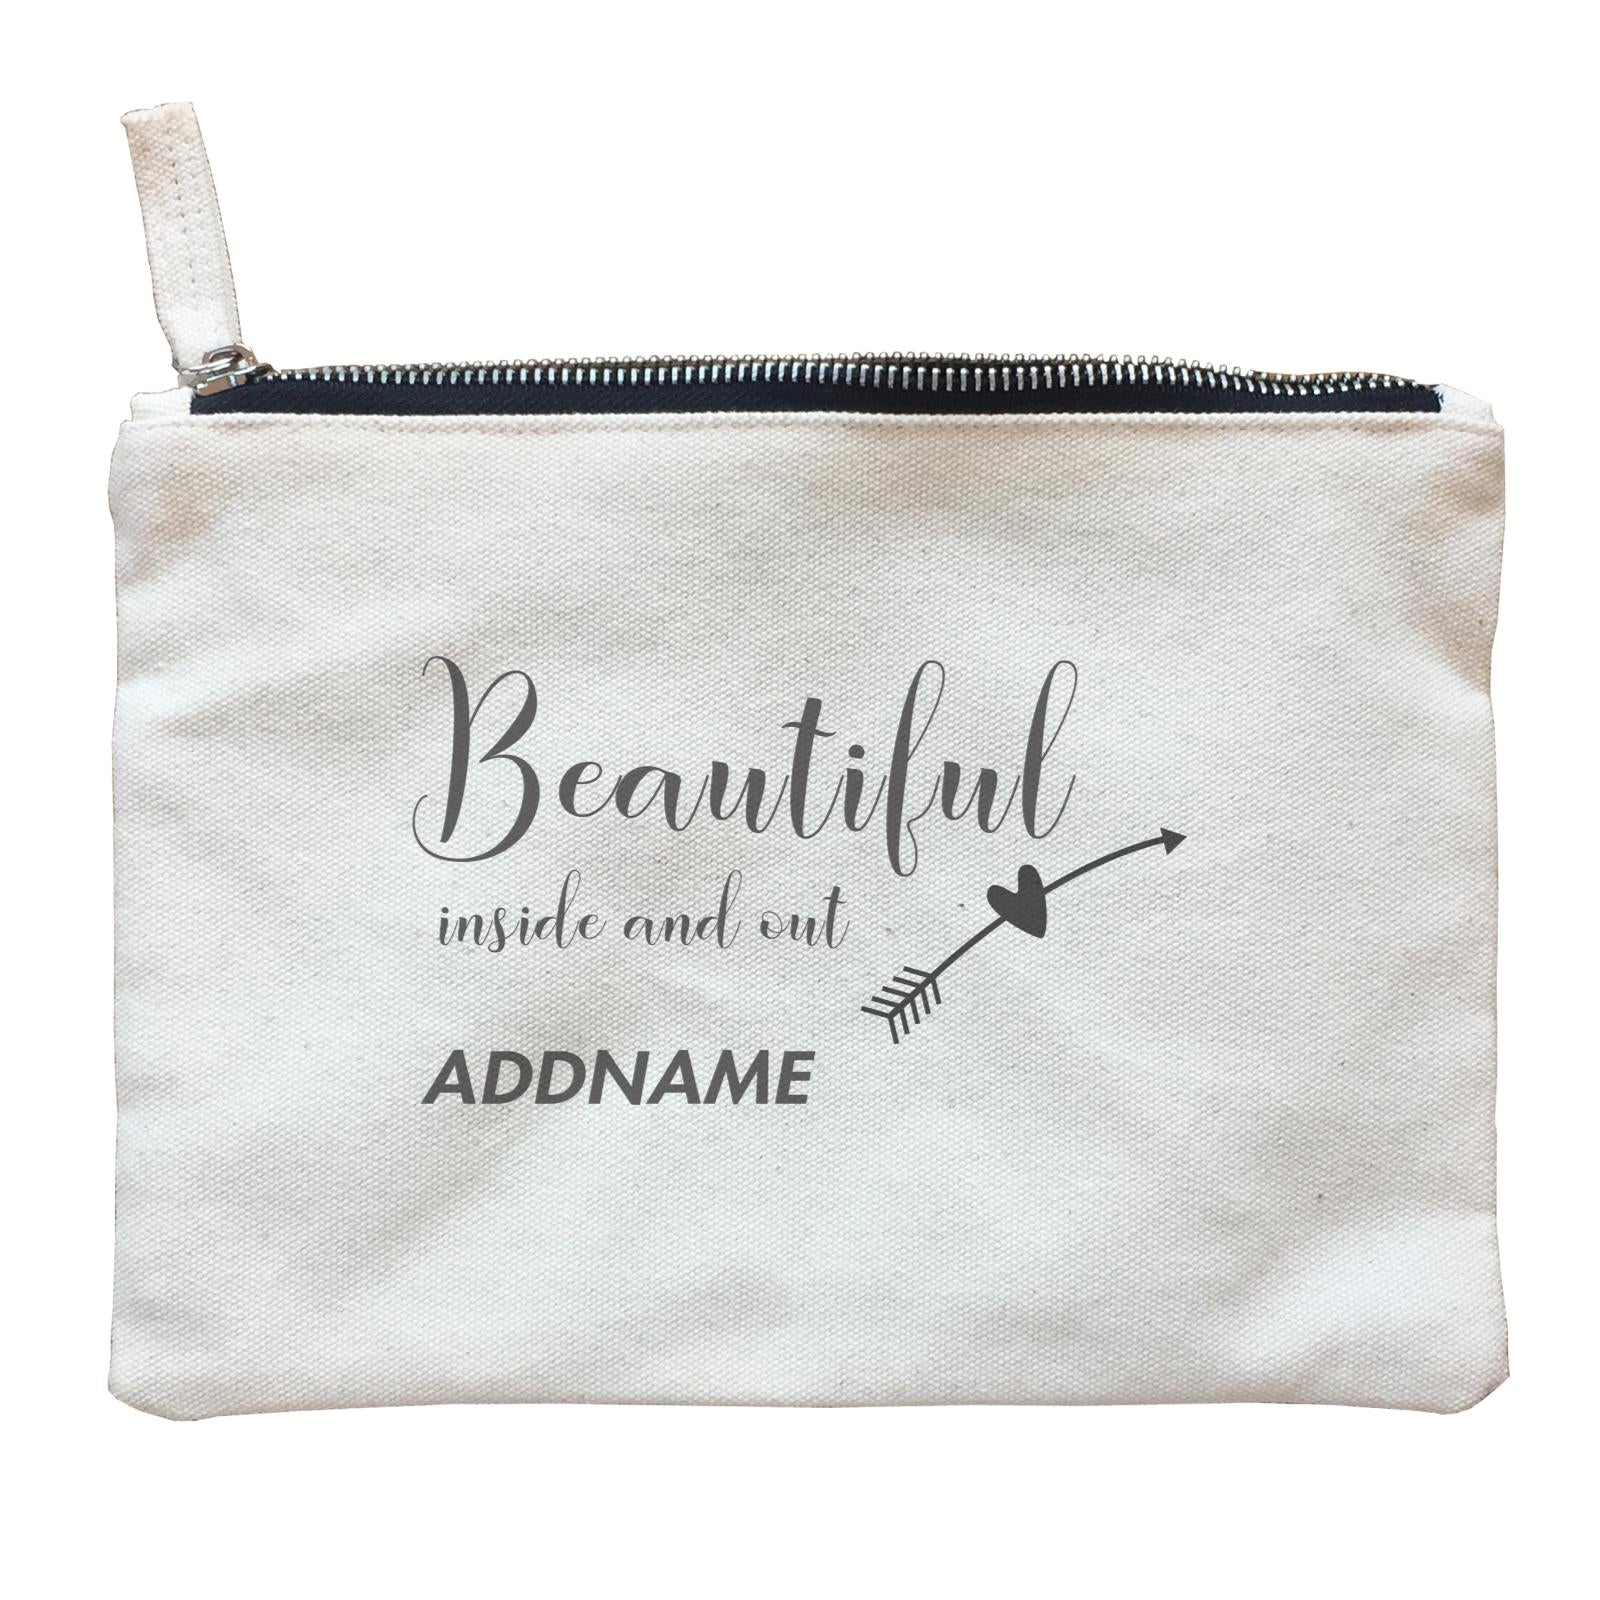 Make Up Quotes Beautiful Inside And Out Addname Zipper Pouch